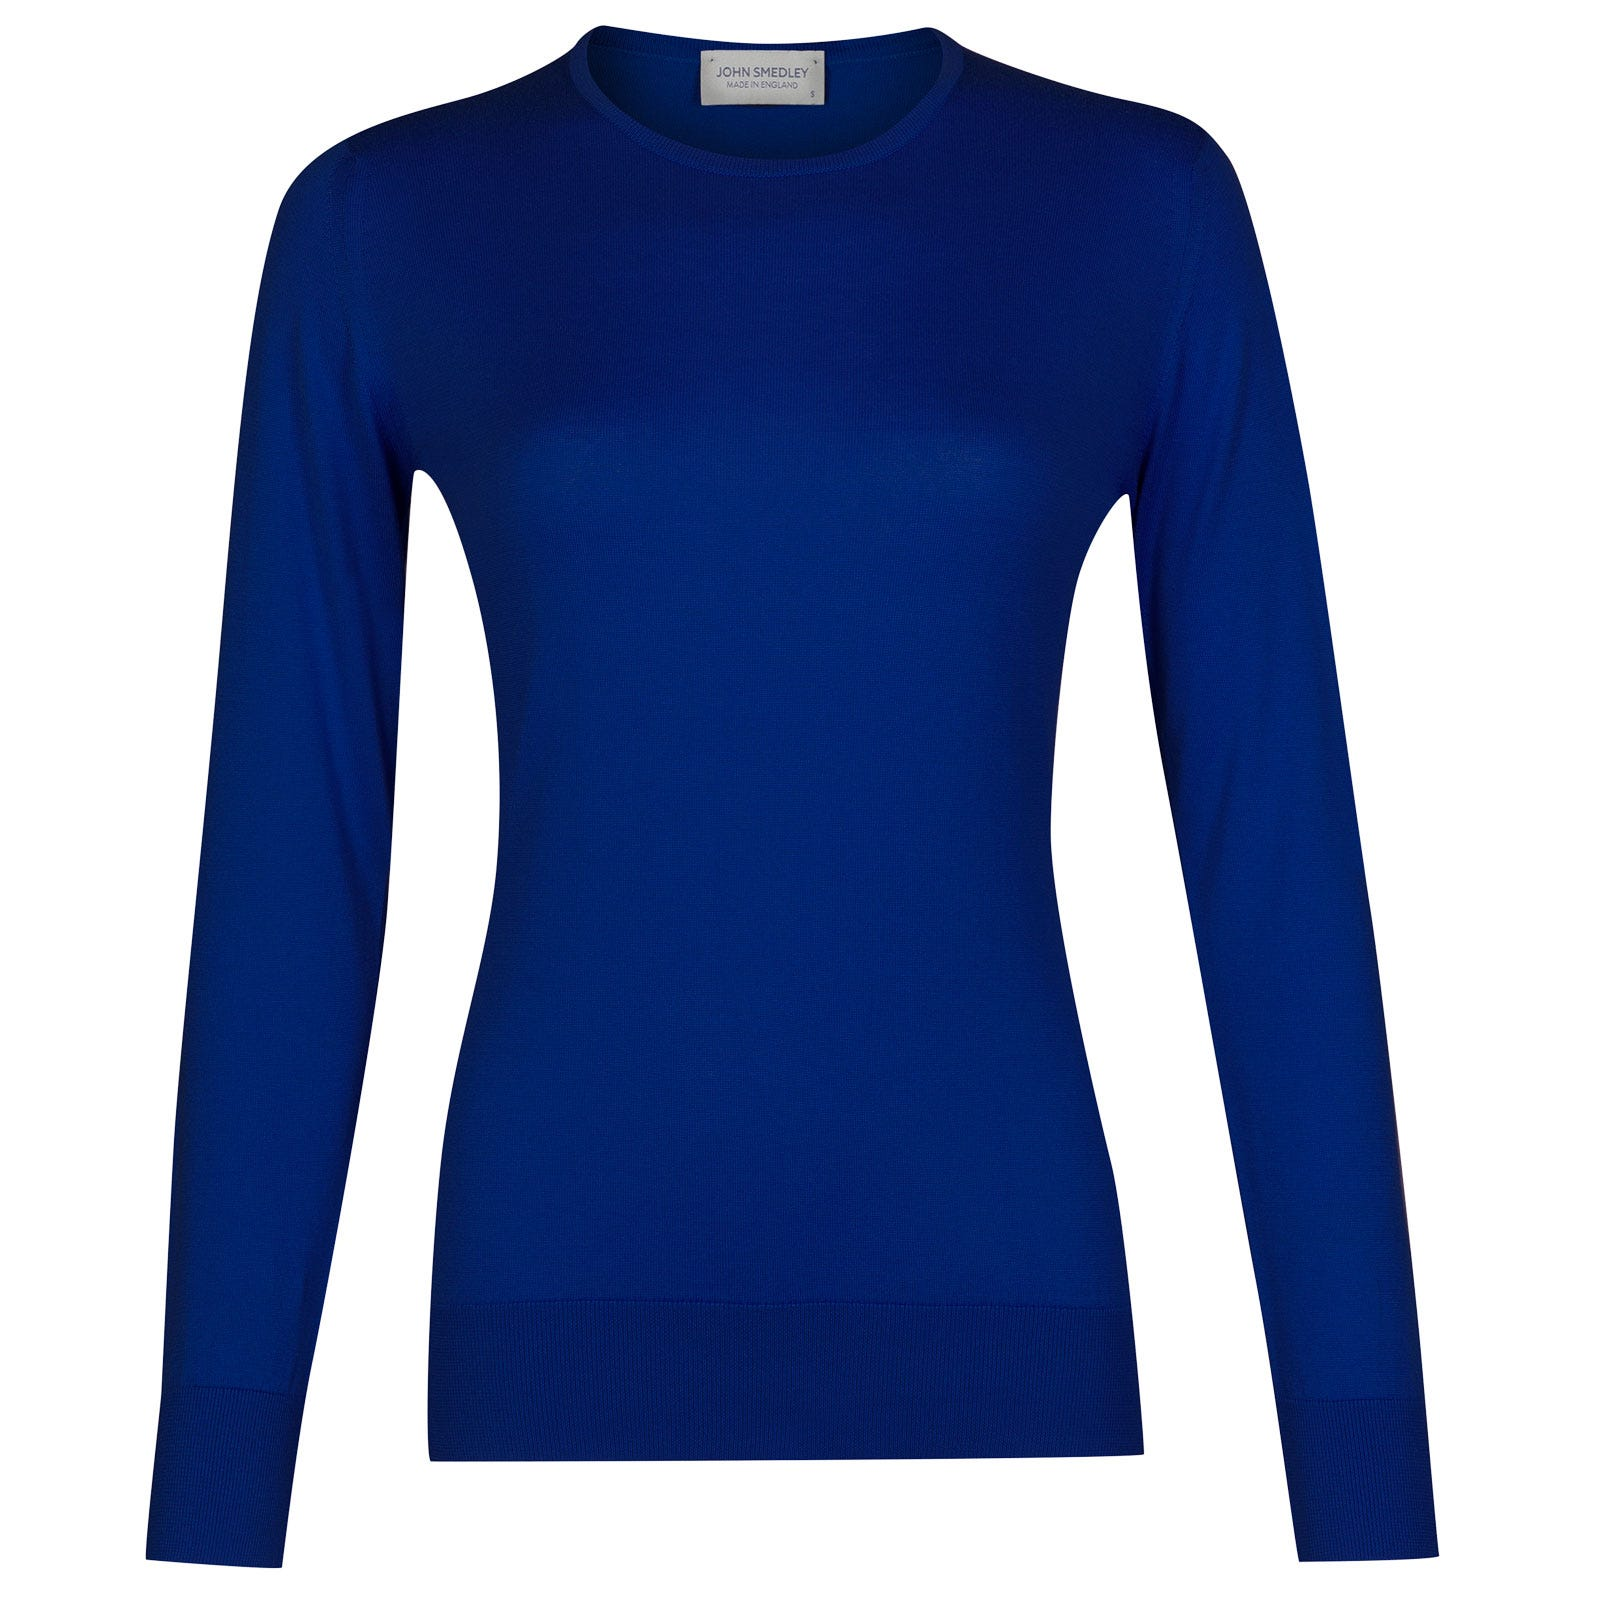 John Smedley paddington Sea Island Cotton Sweater in Coniston Blue-XL